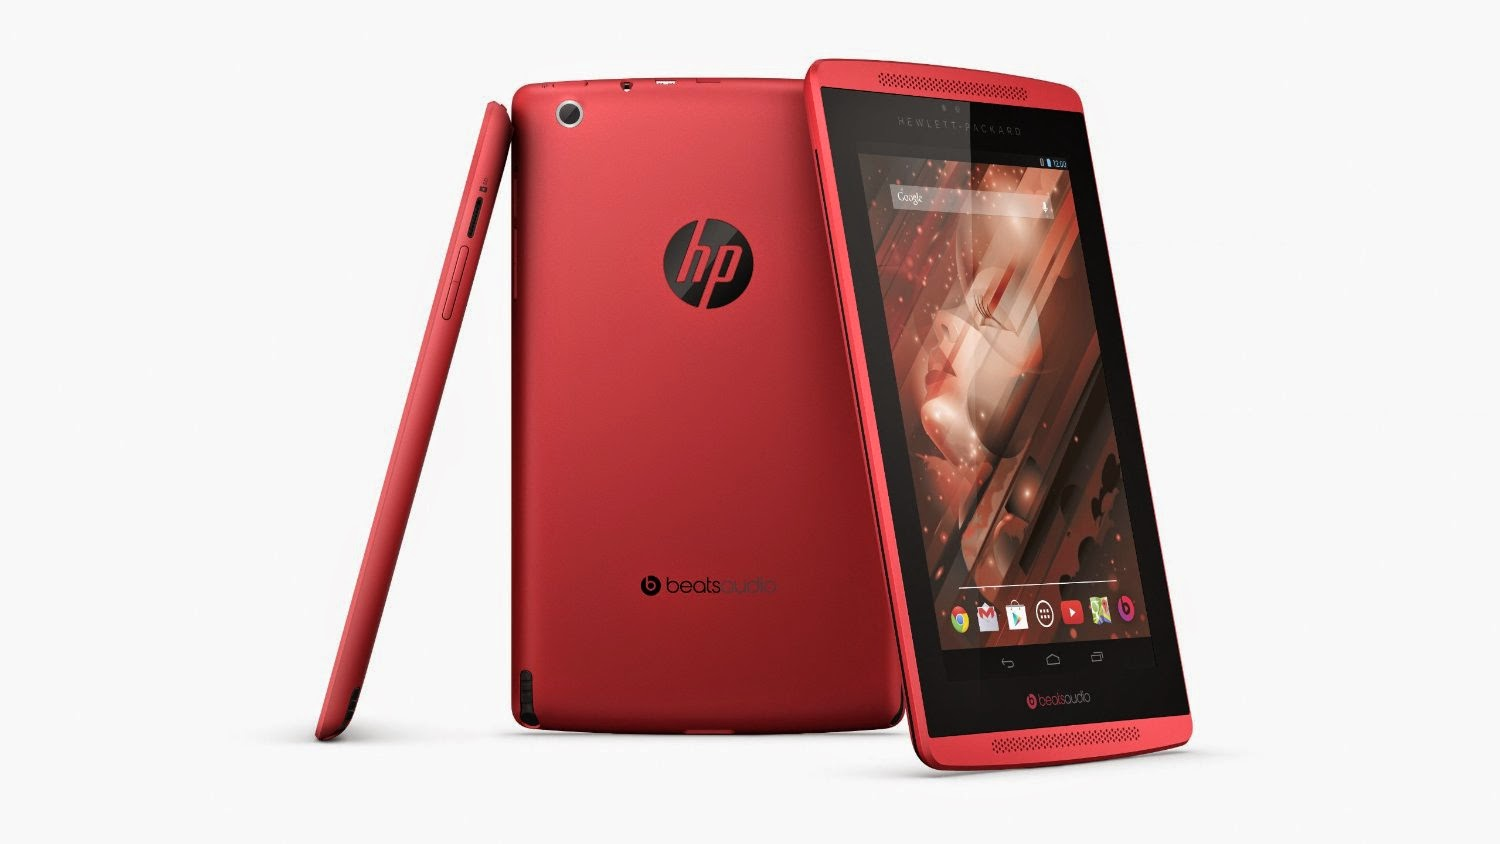 HP Slate 7-inch Beats Edition Tablet